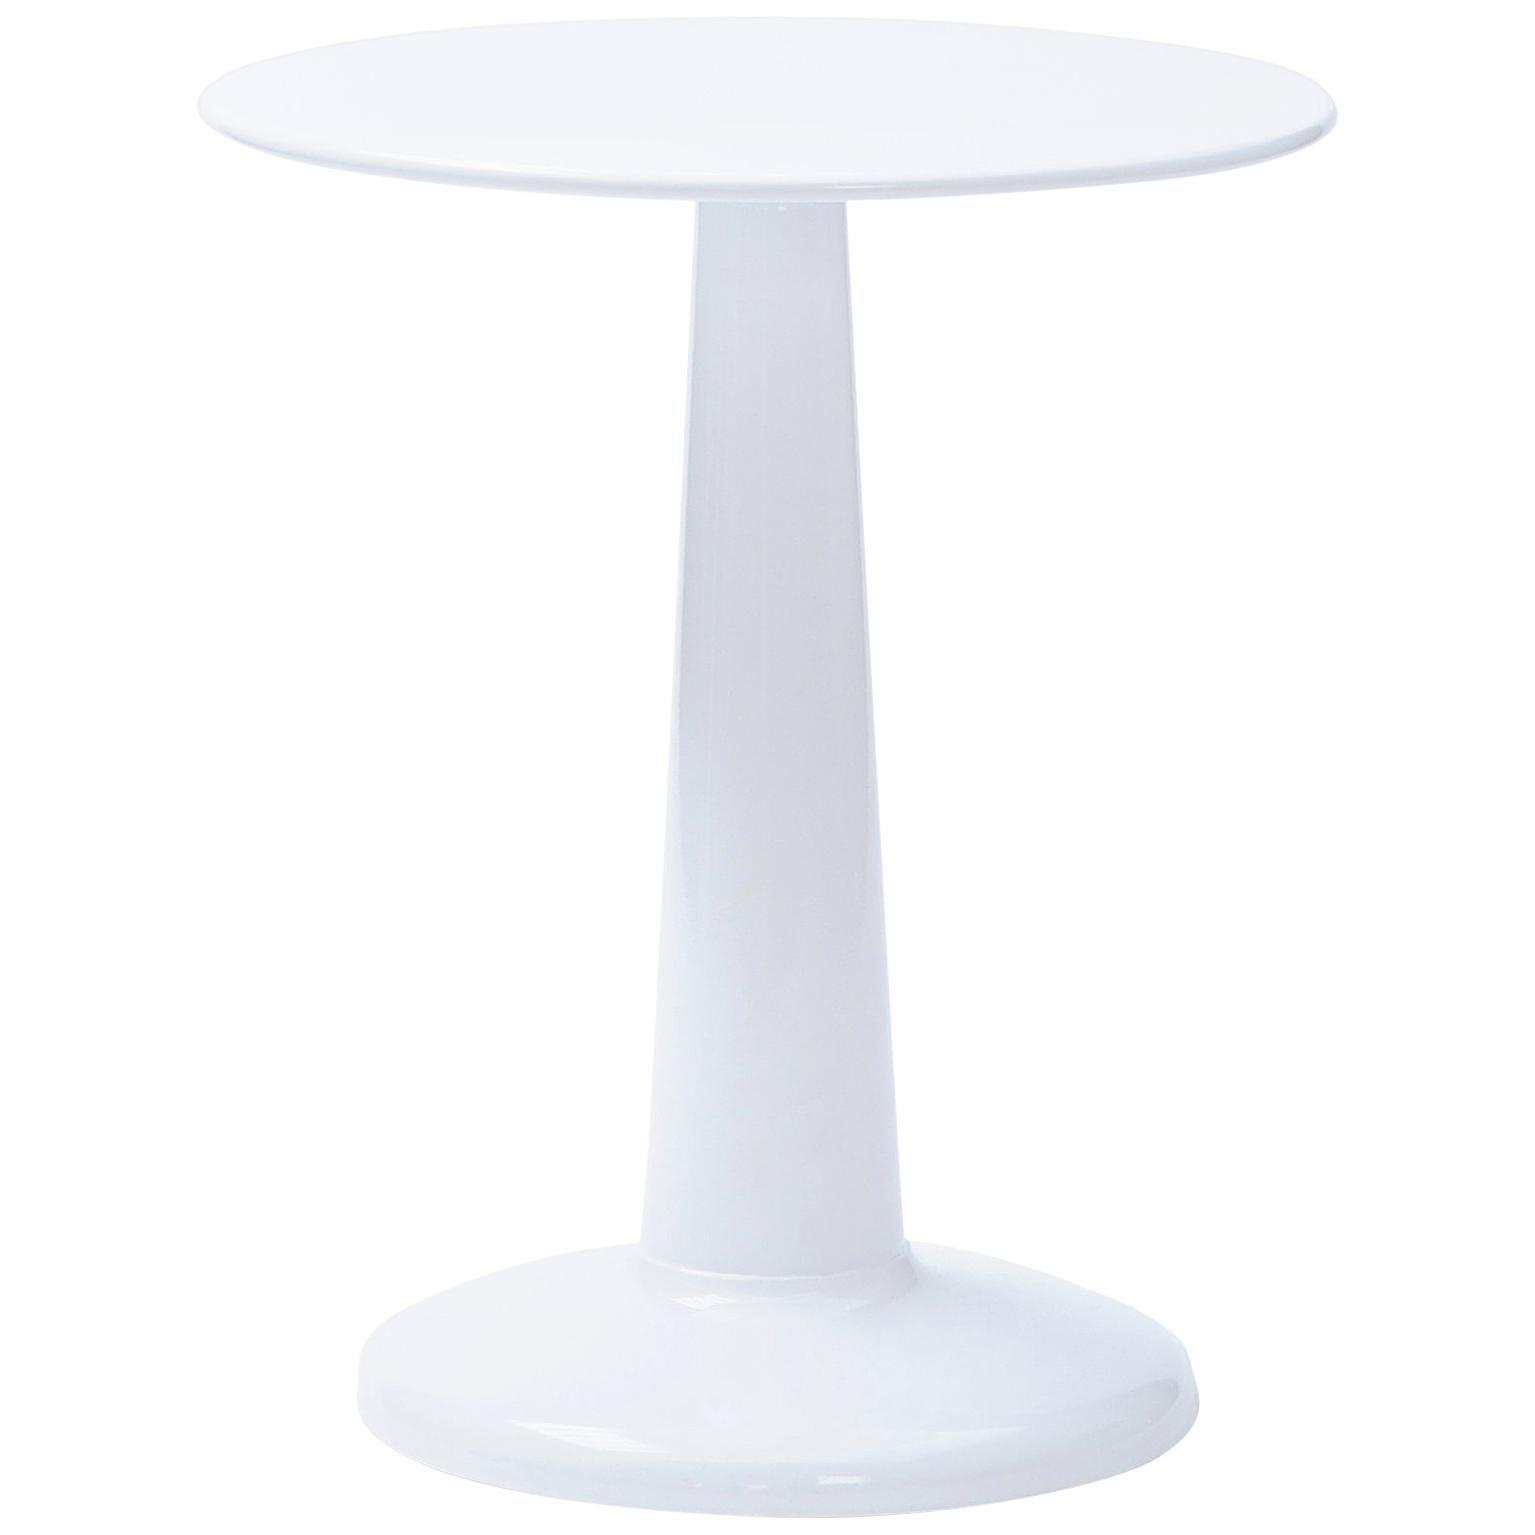 G-Table 60 in Essential Colors by Chantal Andriot & Tolix